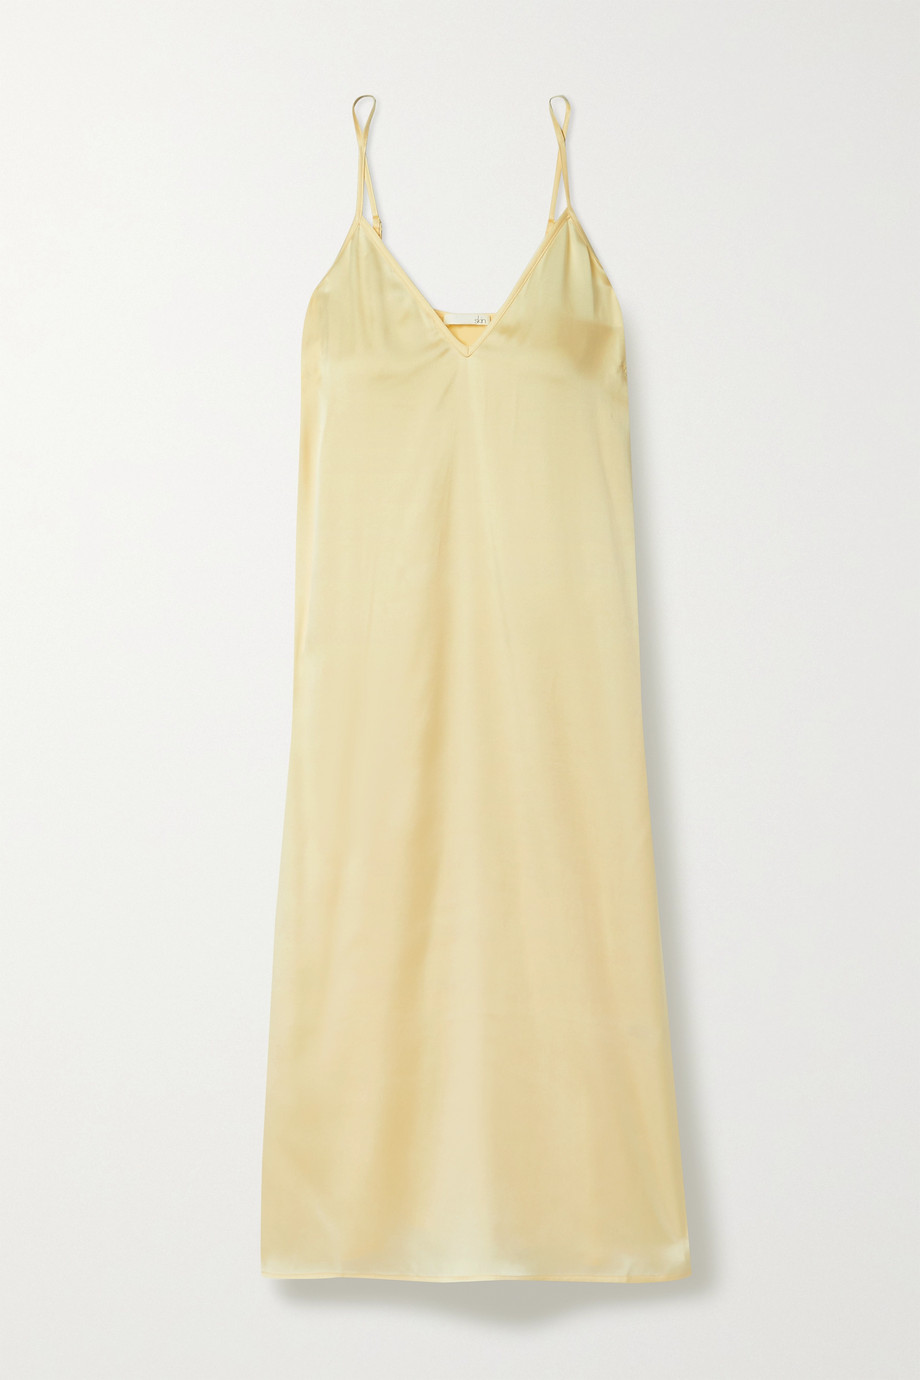 Skin Tess stretch-silk satin chemise